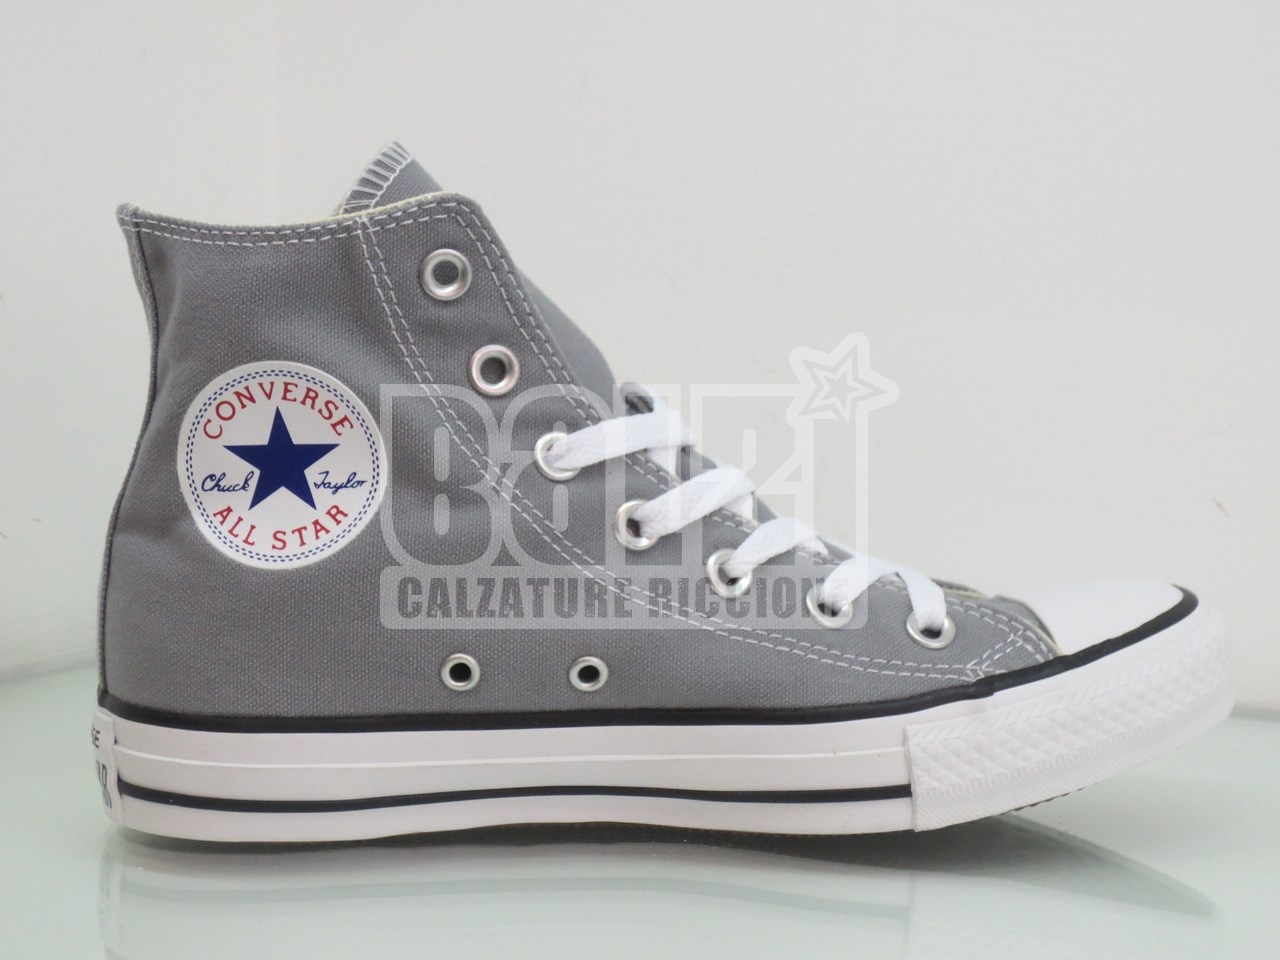 converse all star alte grigie